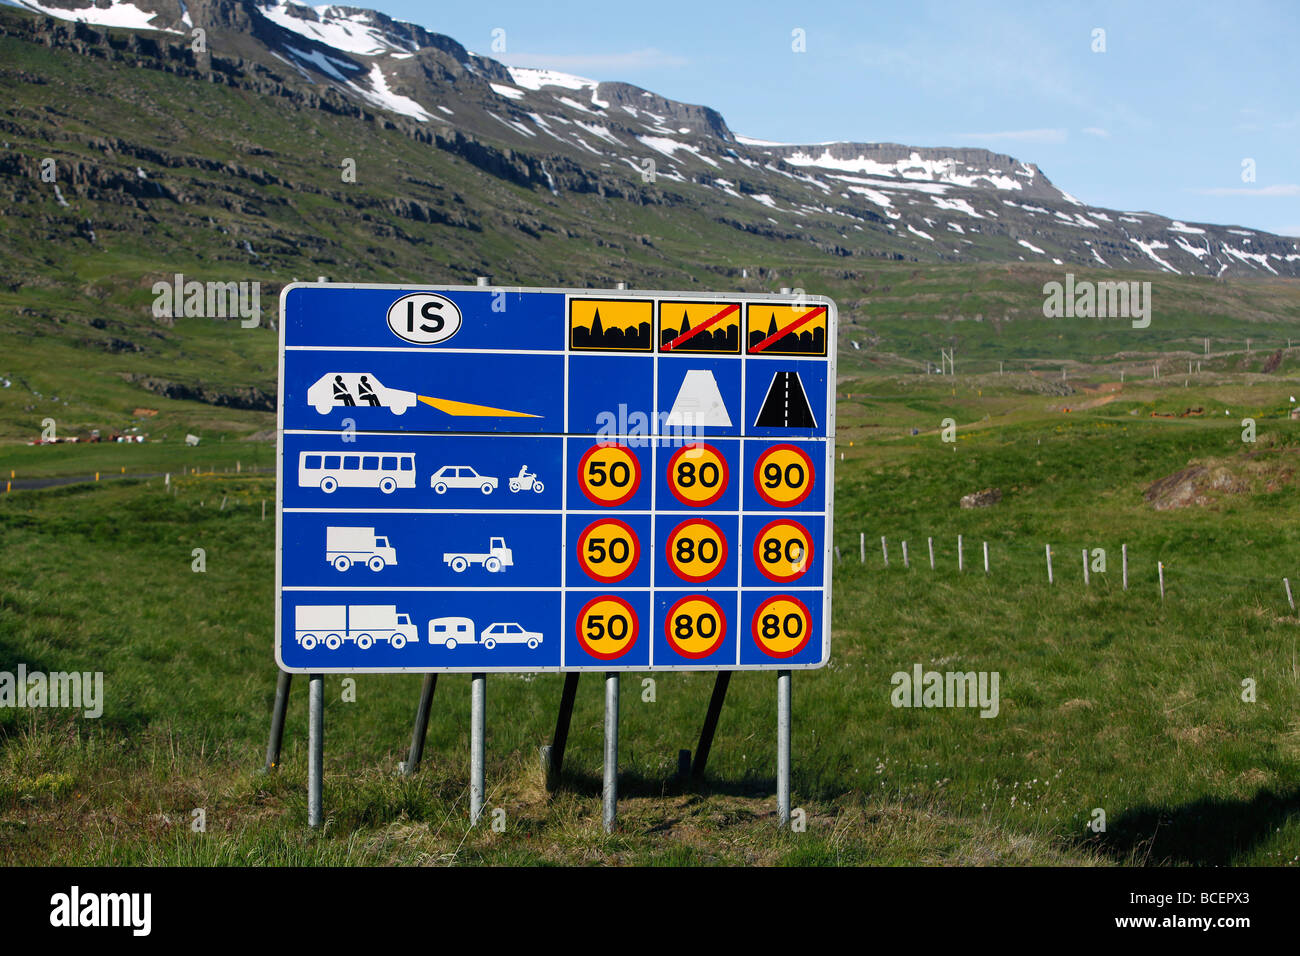 Speed limitations sign, Iceland - Stock Image